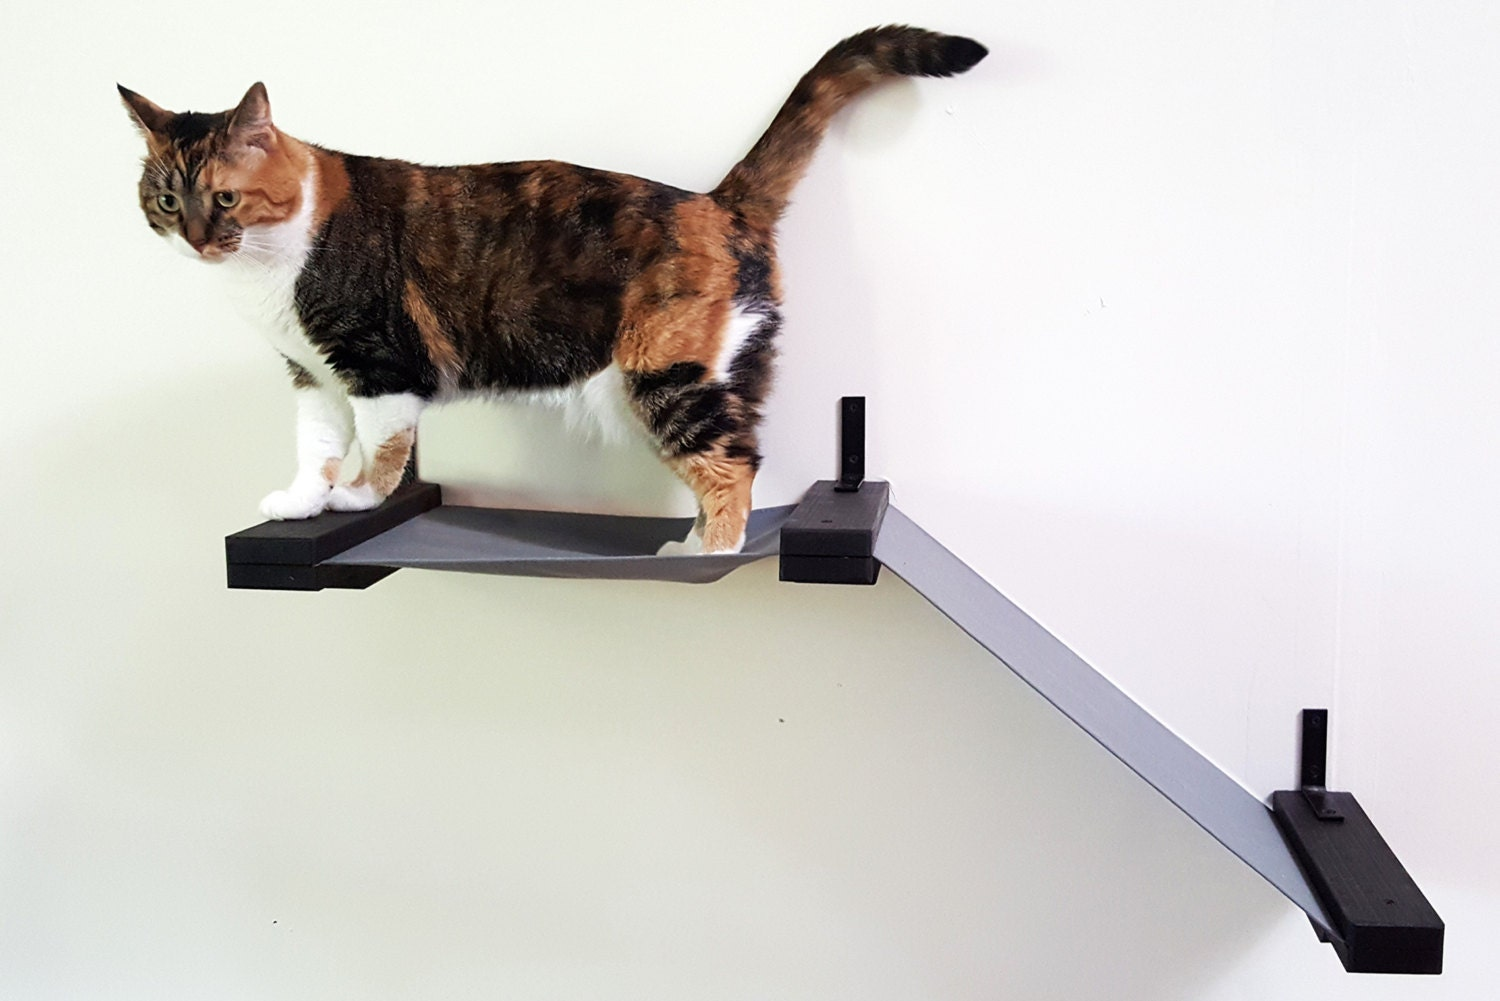 Stylish Cat Wall Shelf w/ Stretched Fabric Raceway Lounge/ Cat Bed